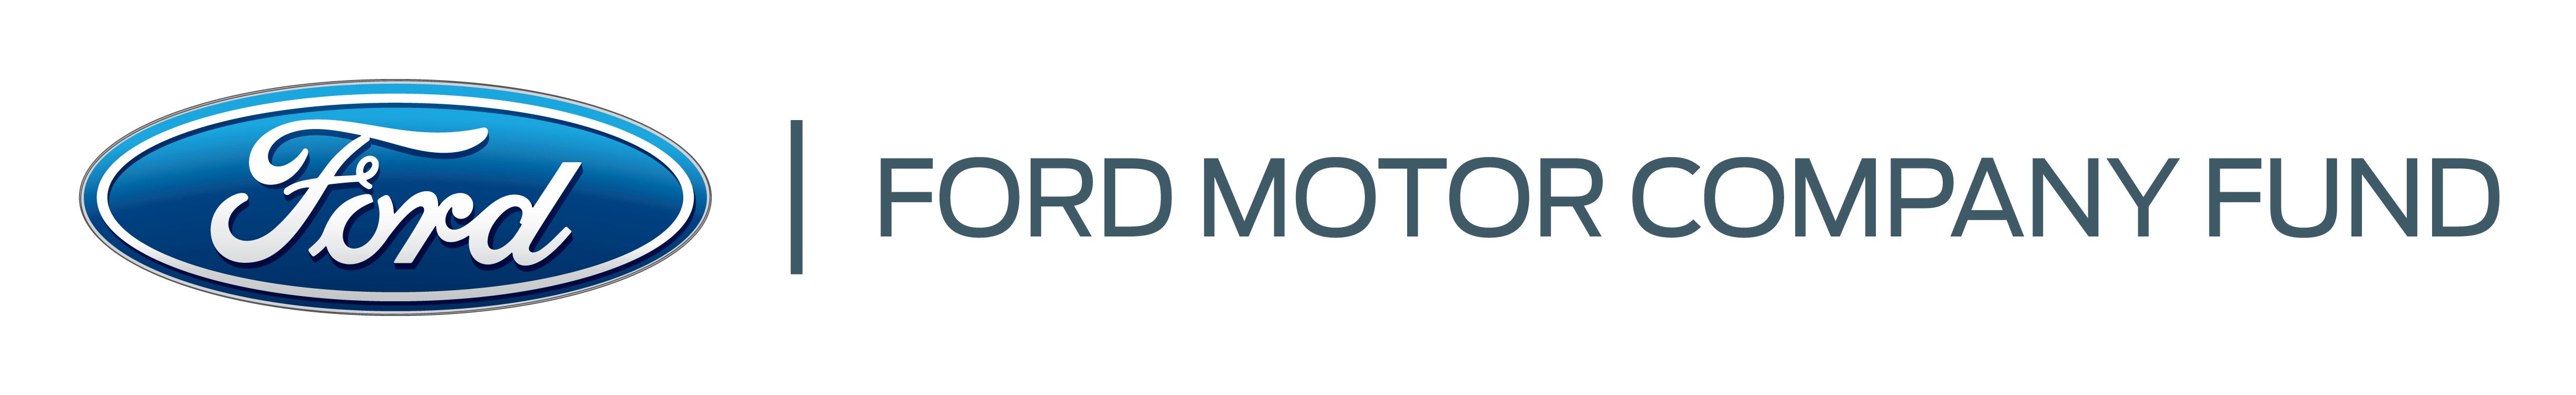 logo of ford motor company fund